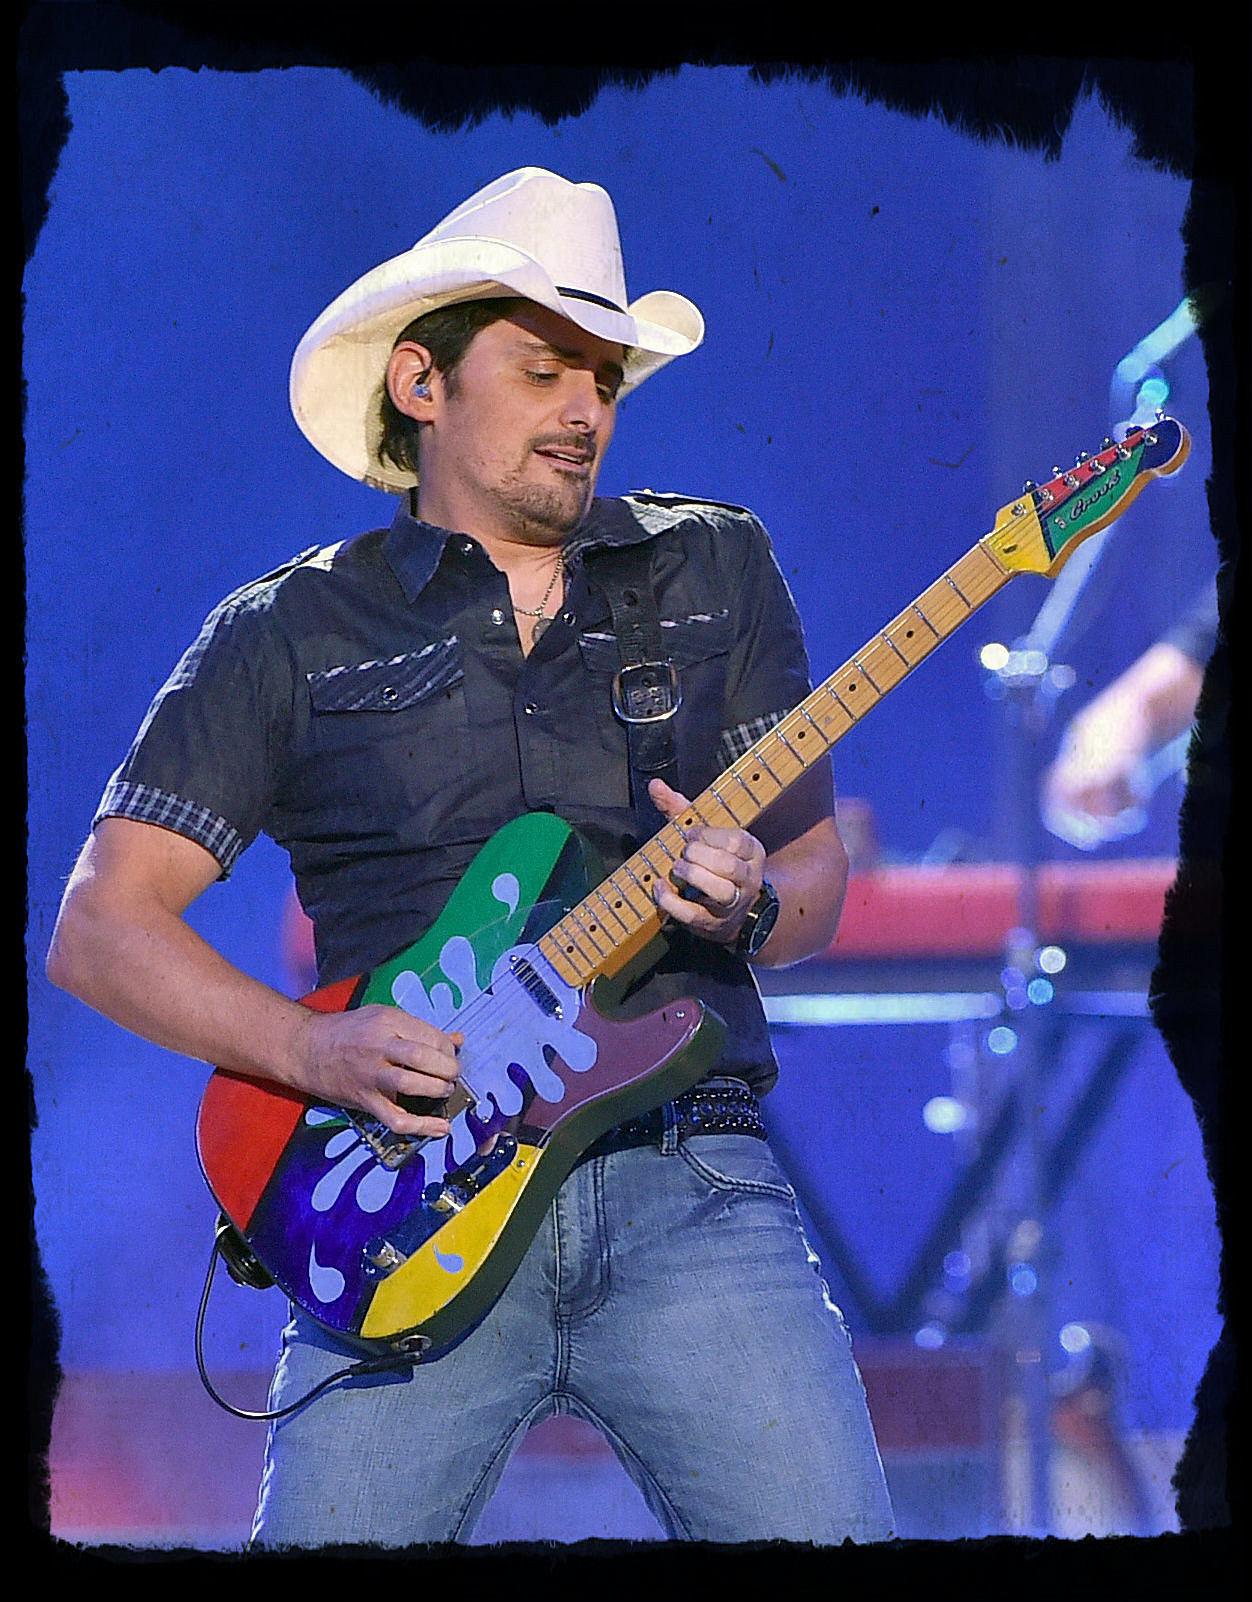 Catch of the Day' - Brad Paisley